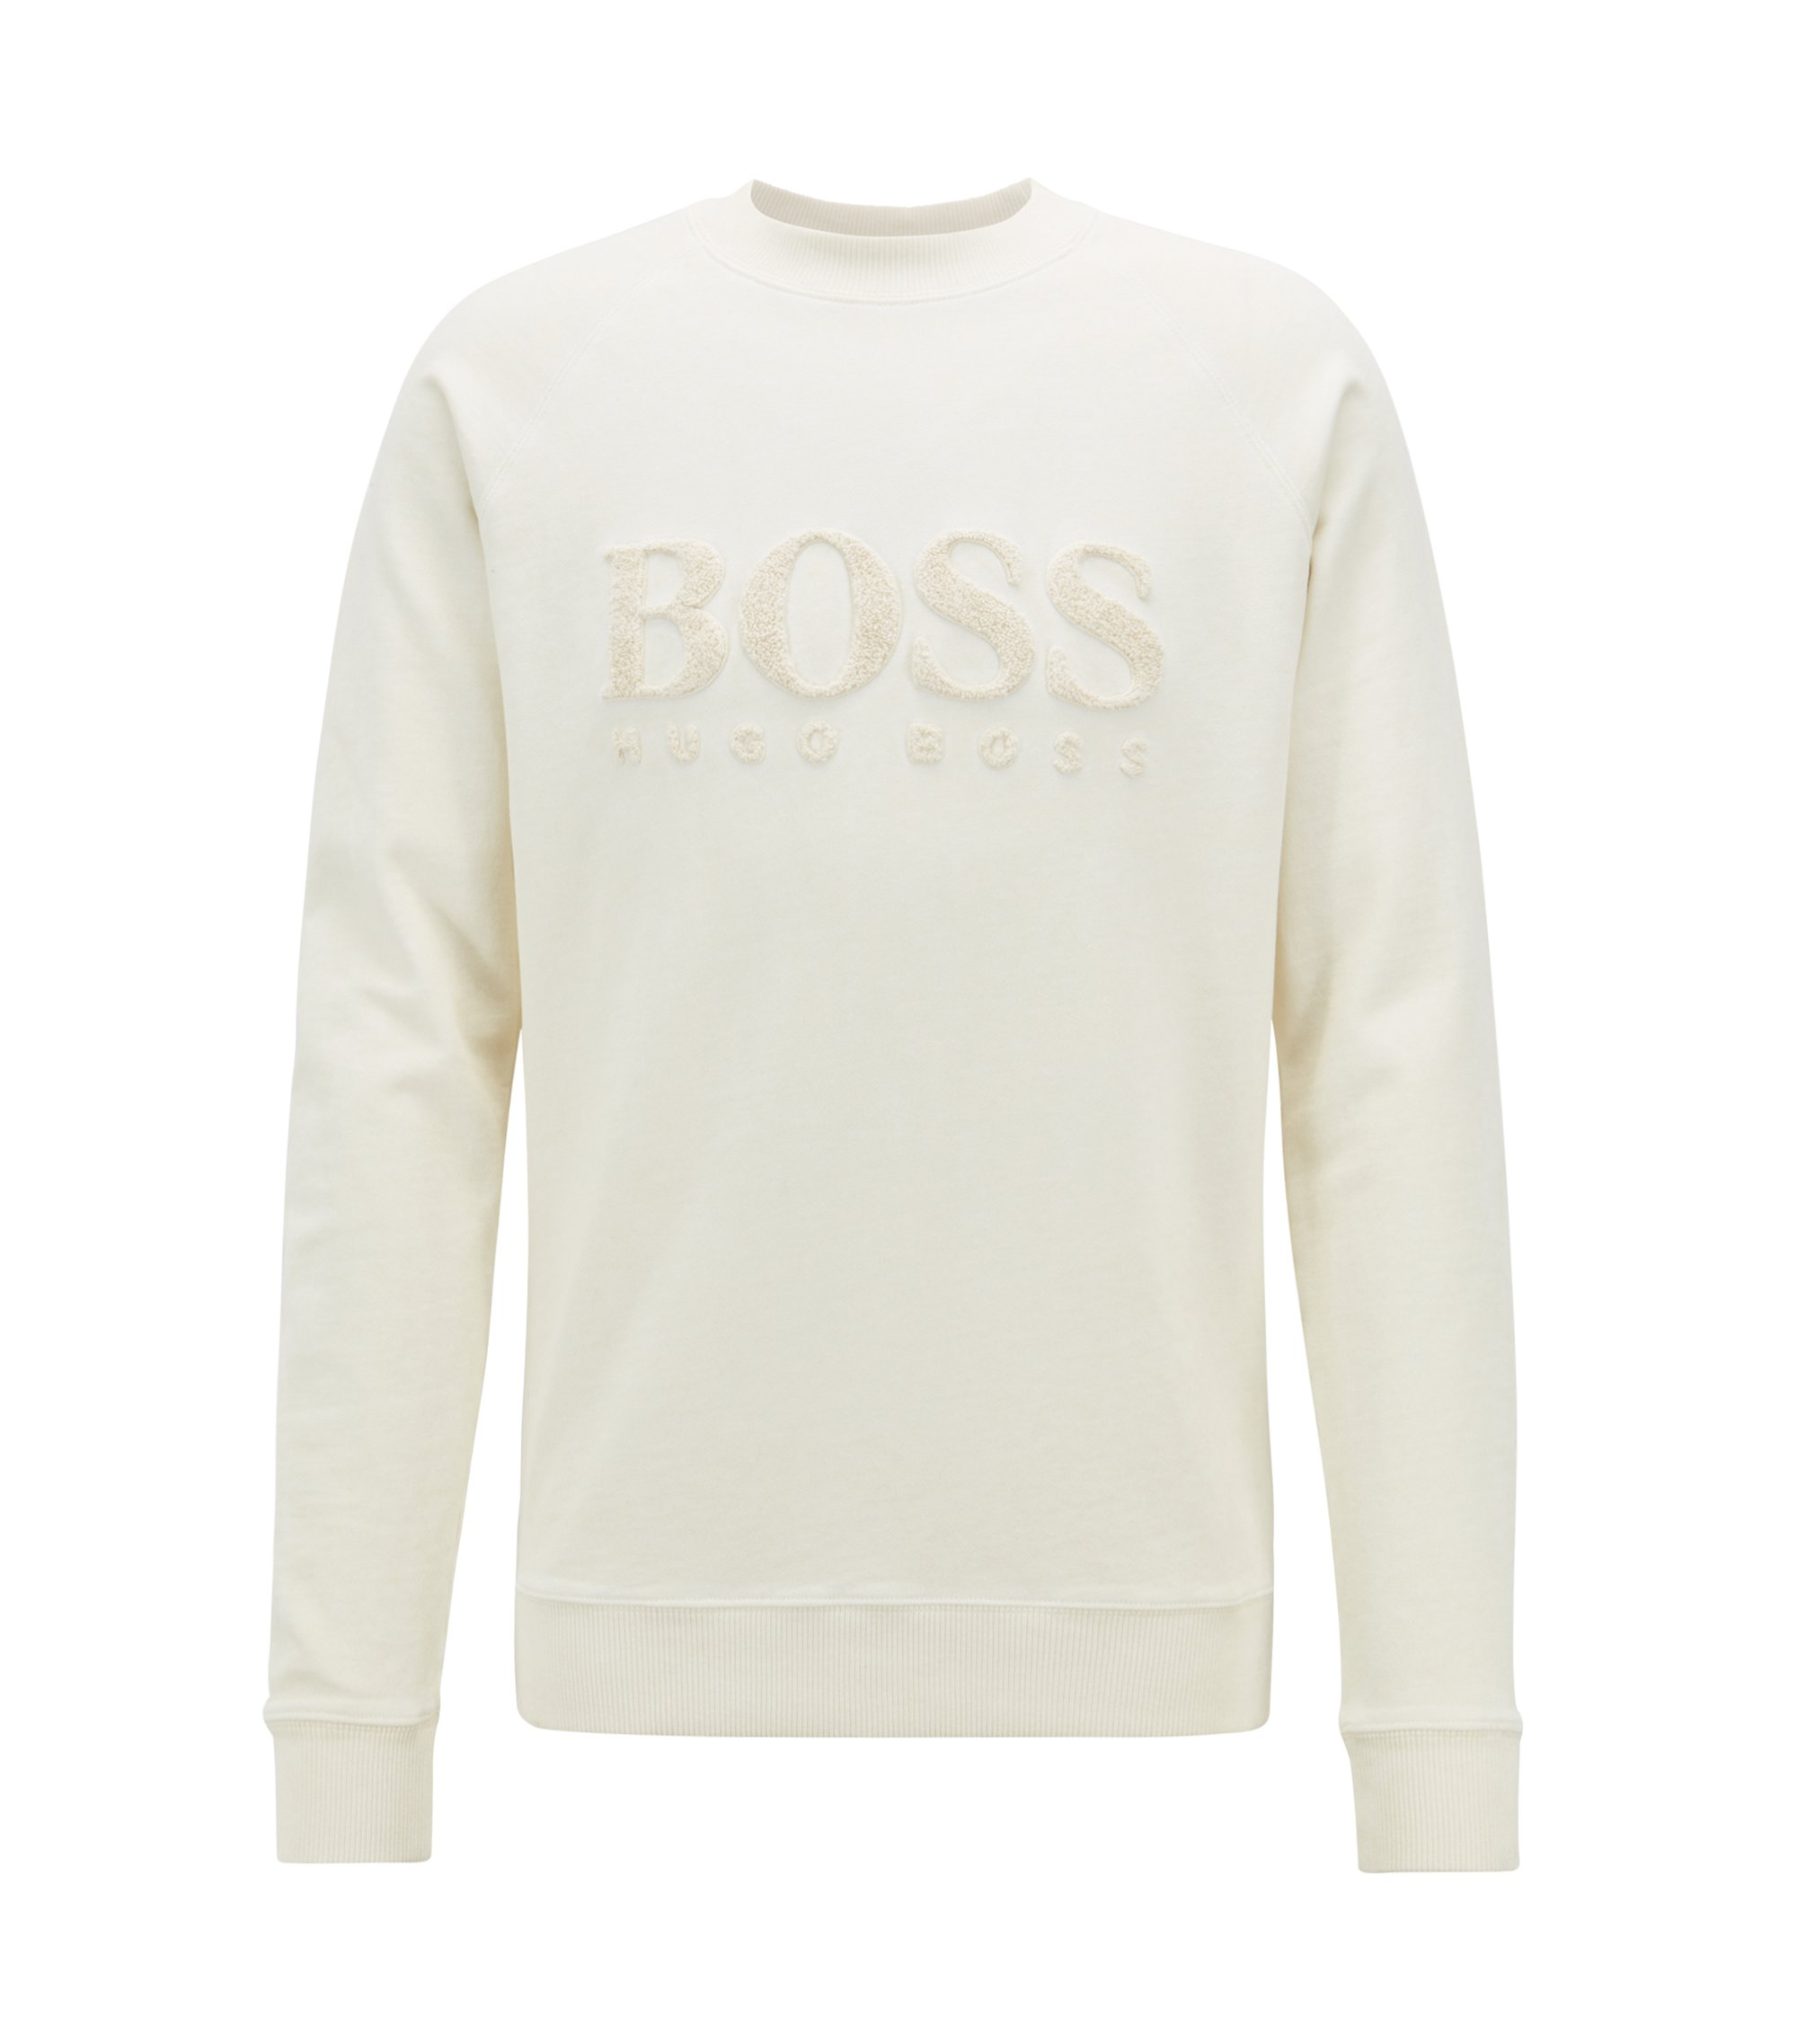 French-terry sweatshirt with embroidered logo, Light Beige